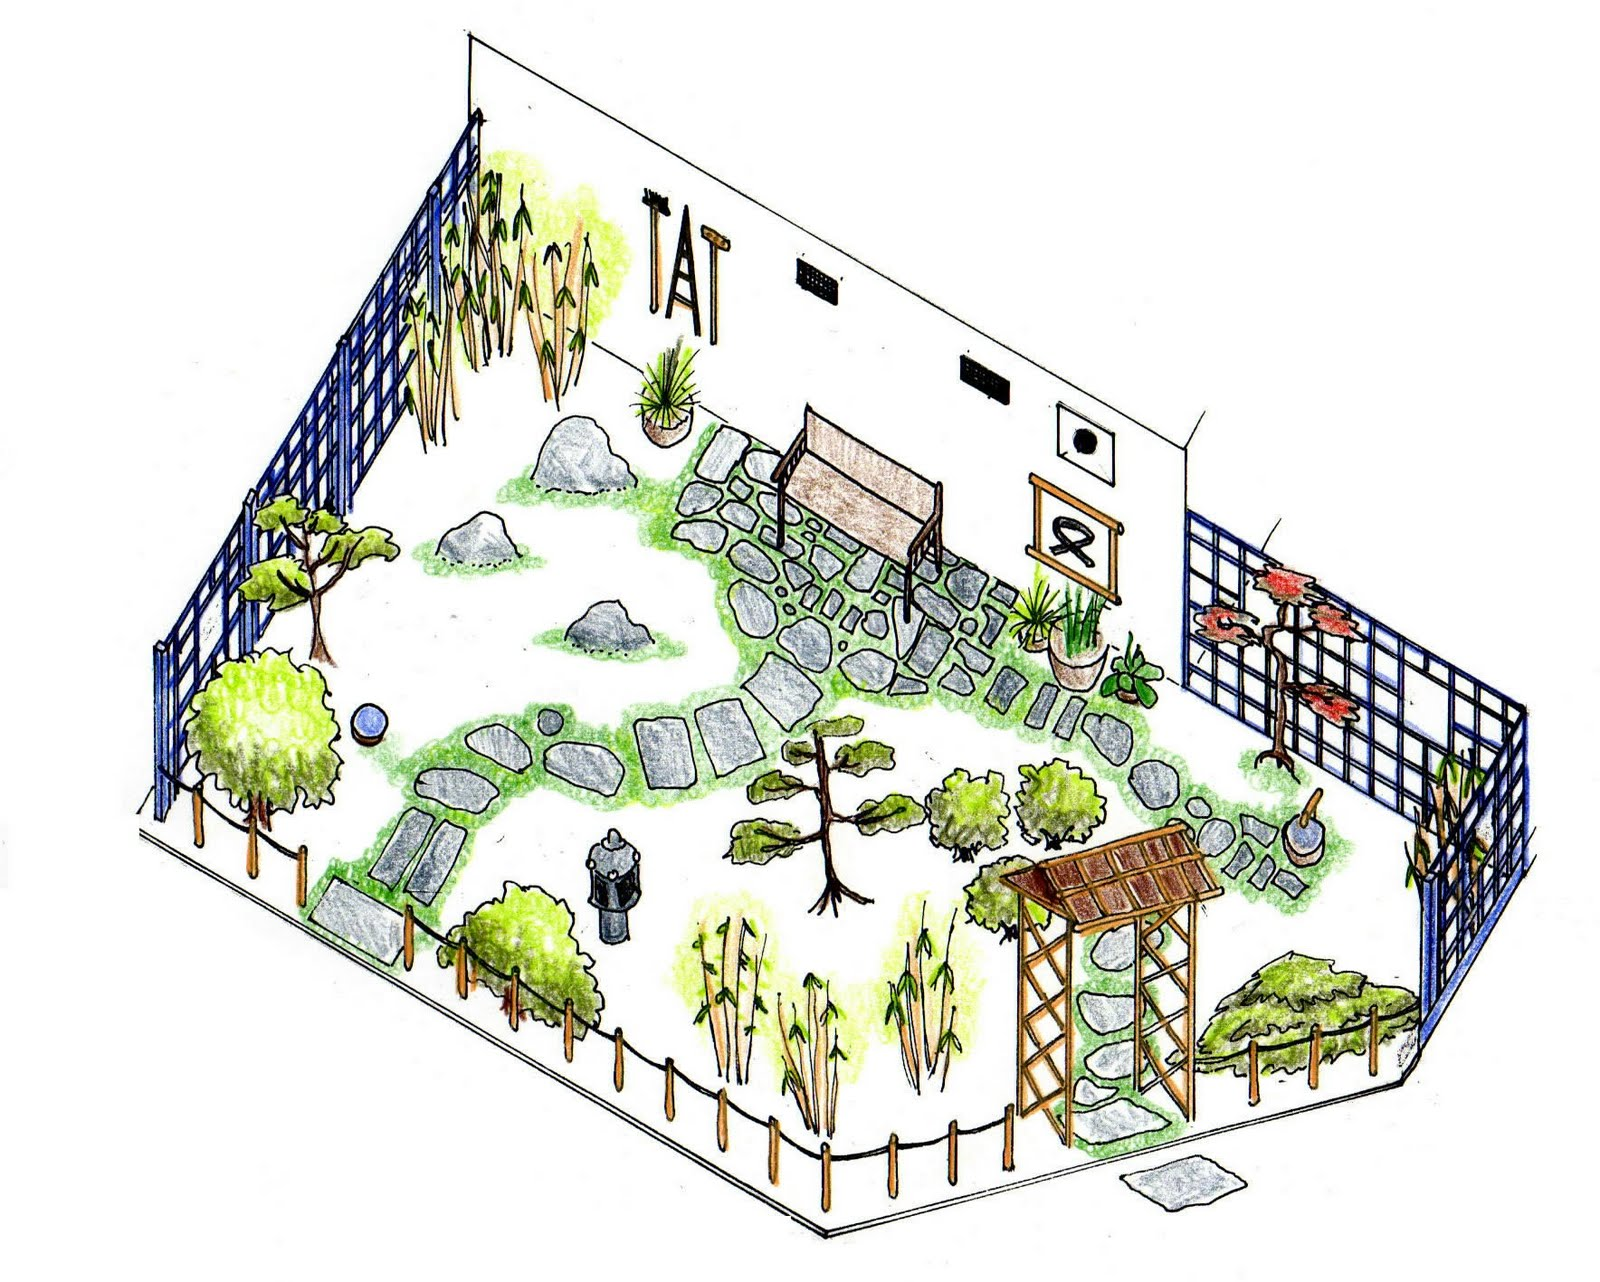 Amazing Plan For Memorial Garden 2009